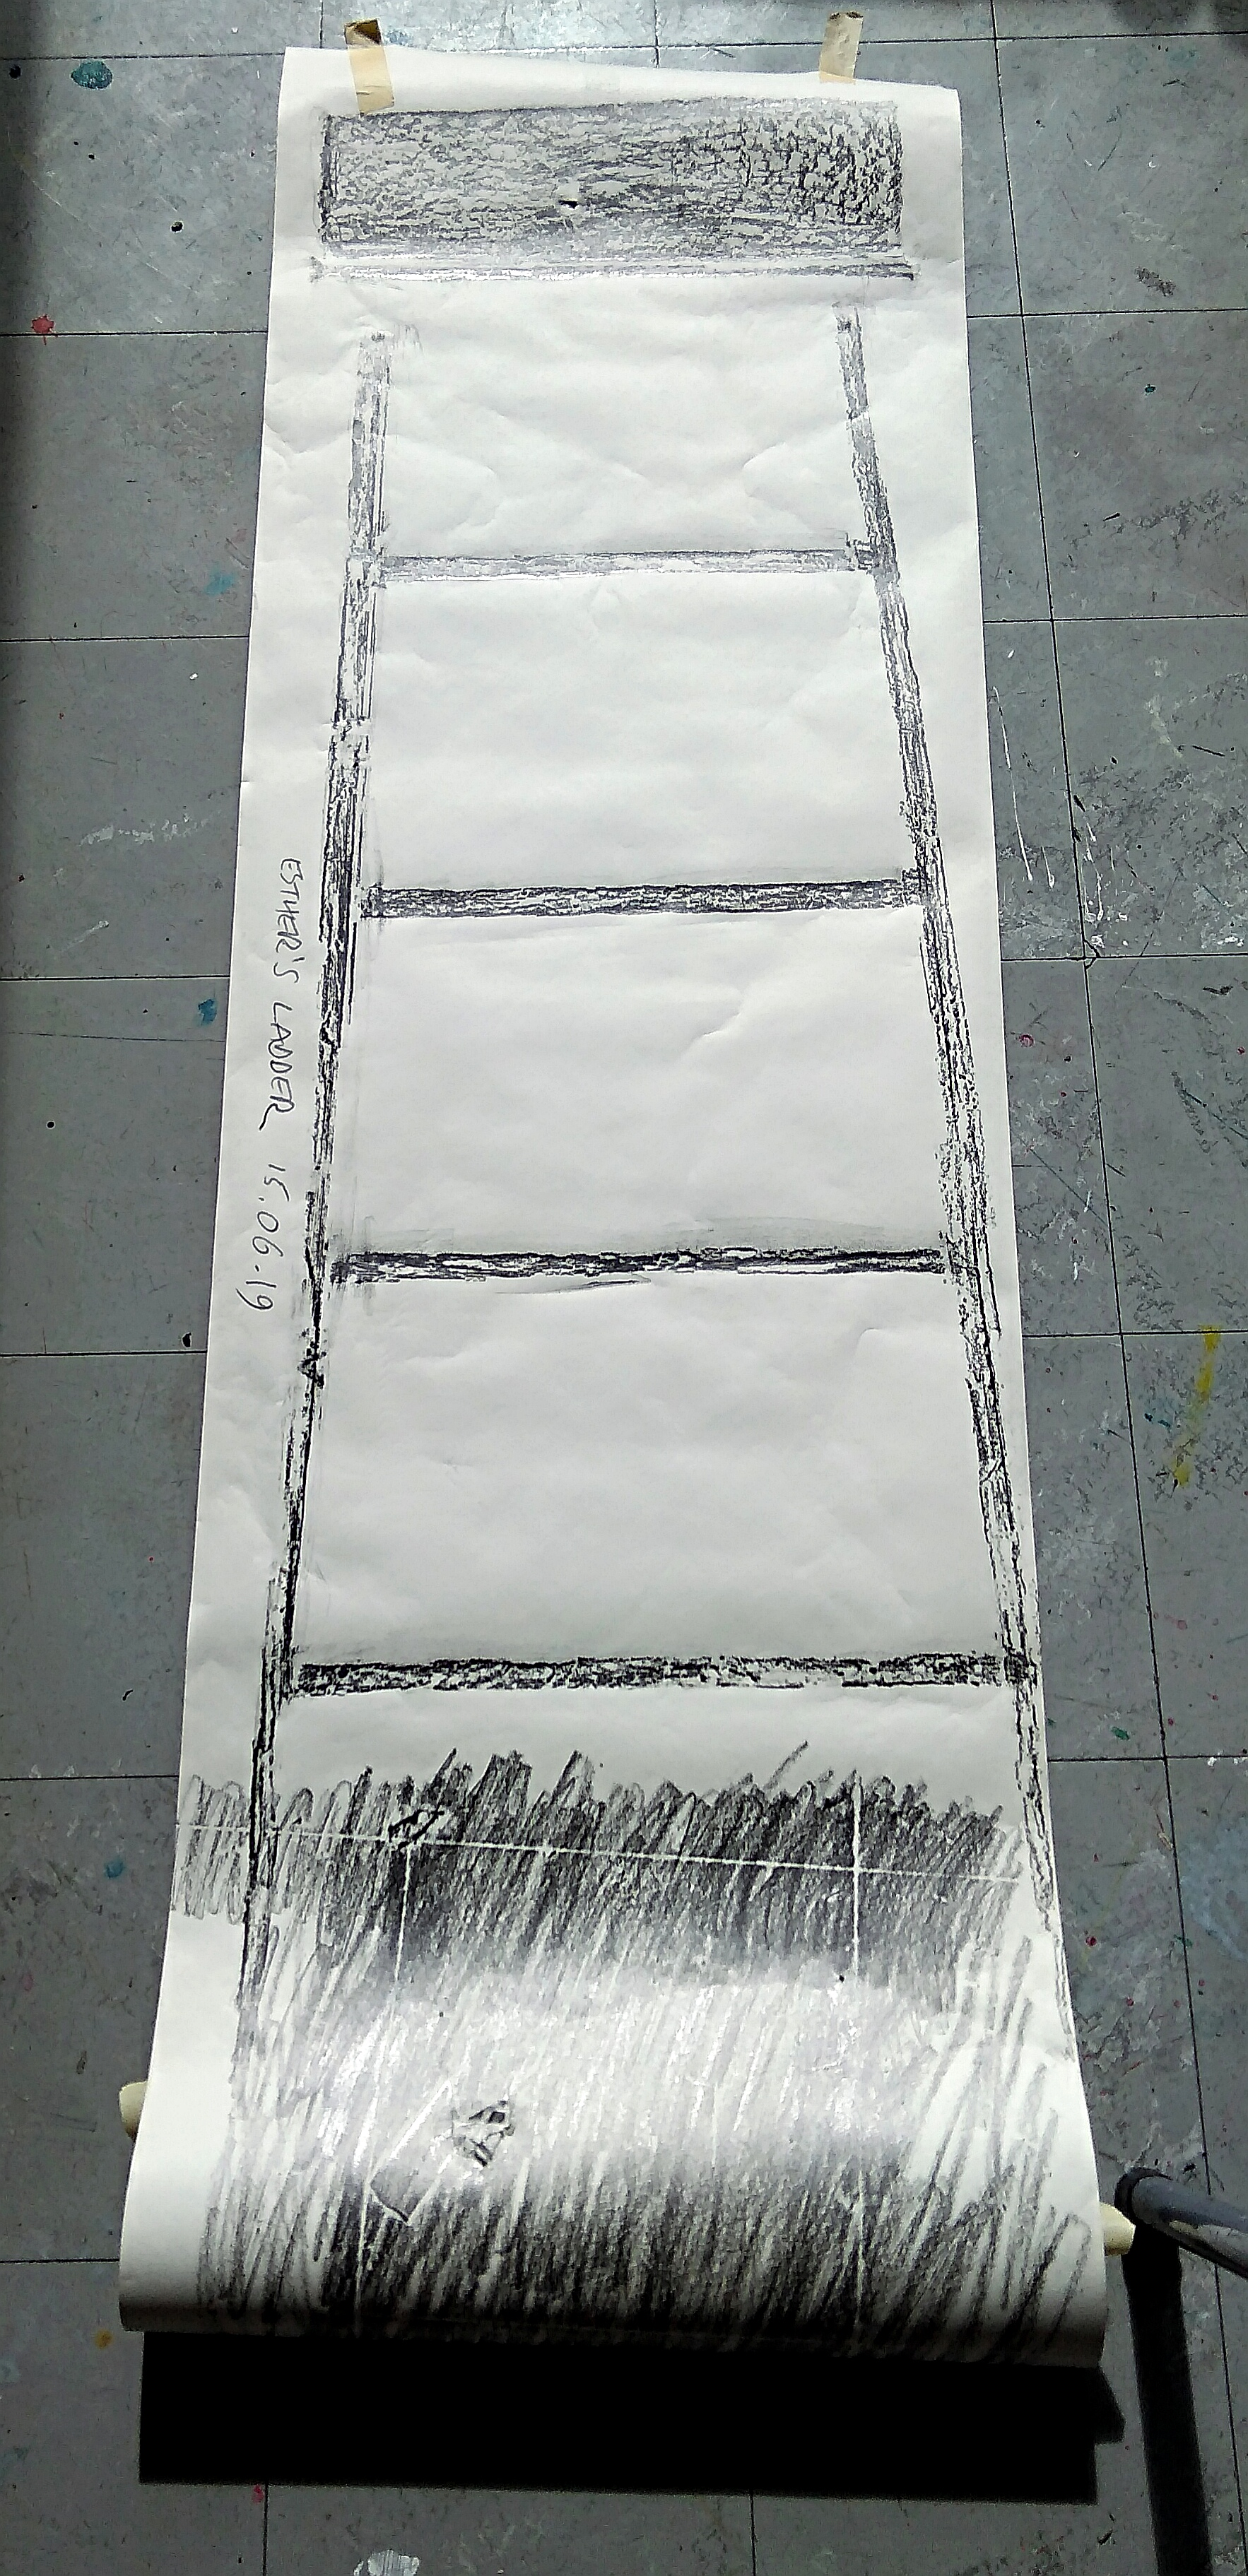 Frottage of Esthers Ladder by Chris Lewis Jones, Artist based at Primary Nottingham.